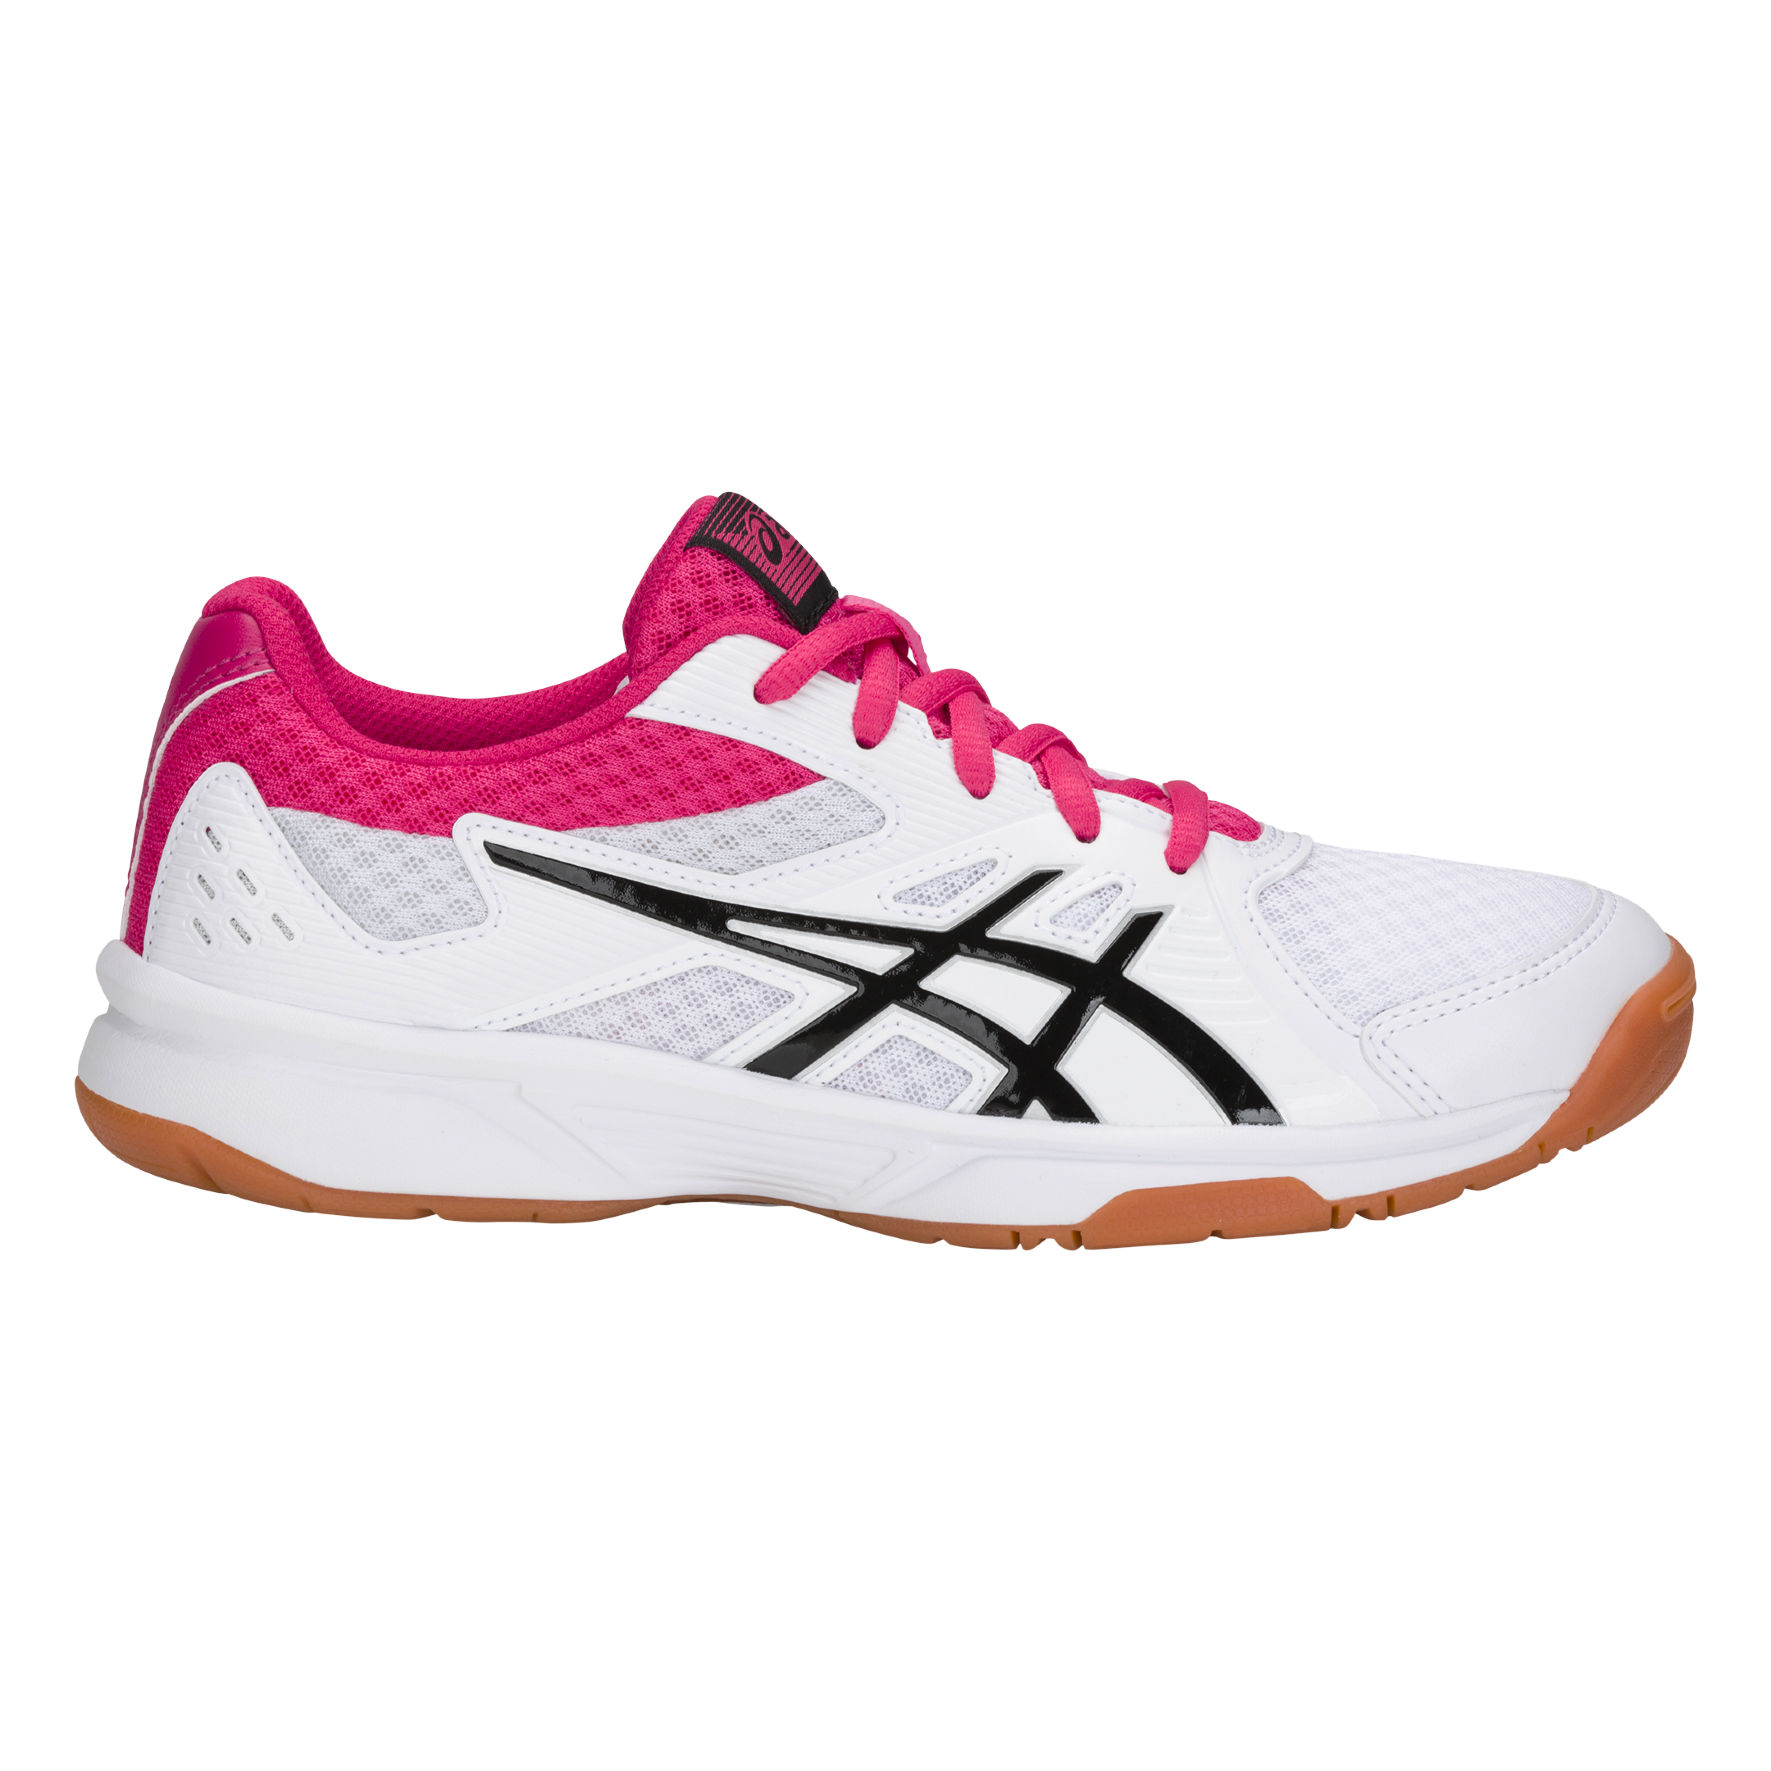 Asics Lady Upcourt 3 in Weiß Pink